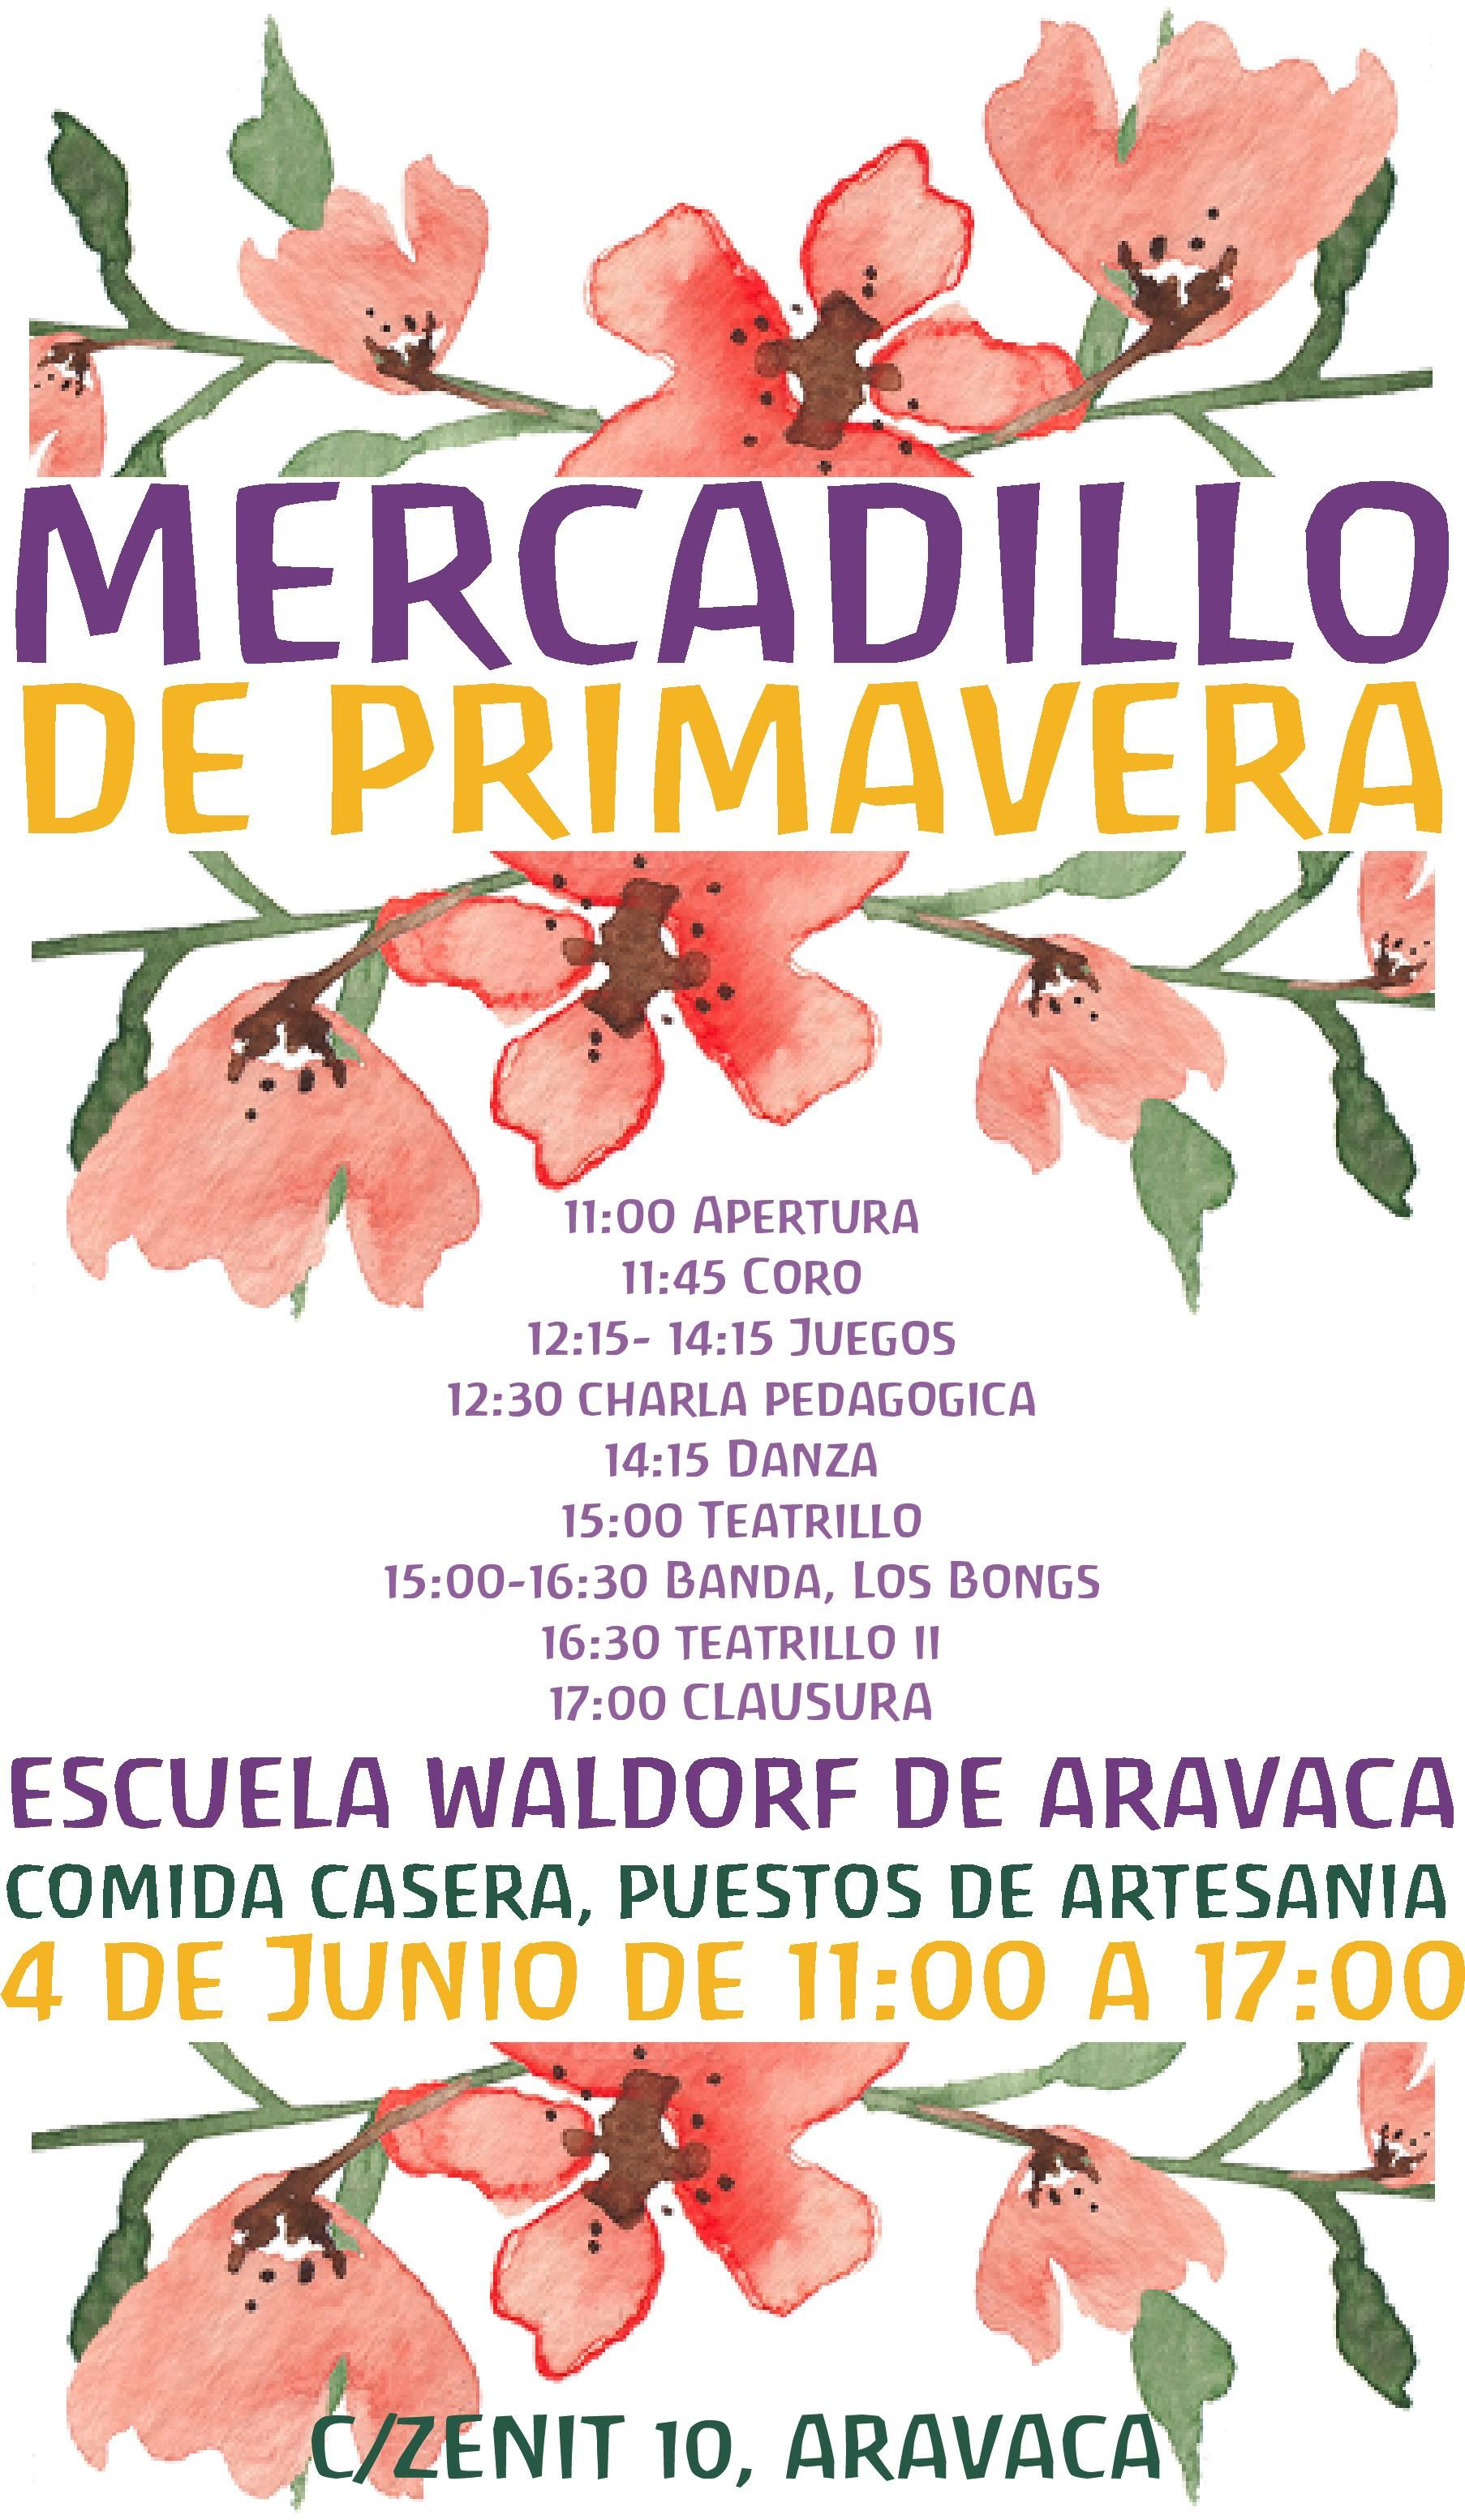 CARTEL-MERCADILLO-PRIMAVERA